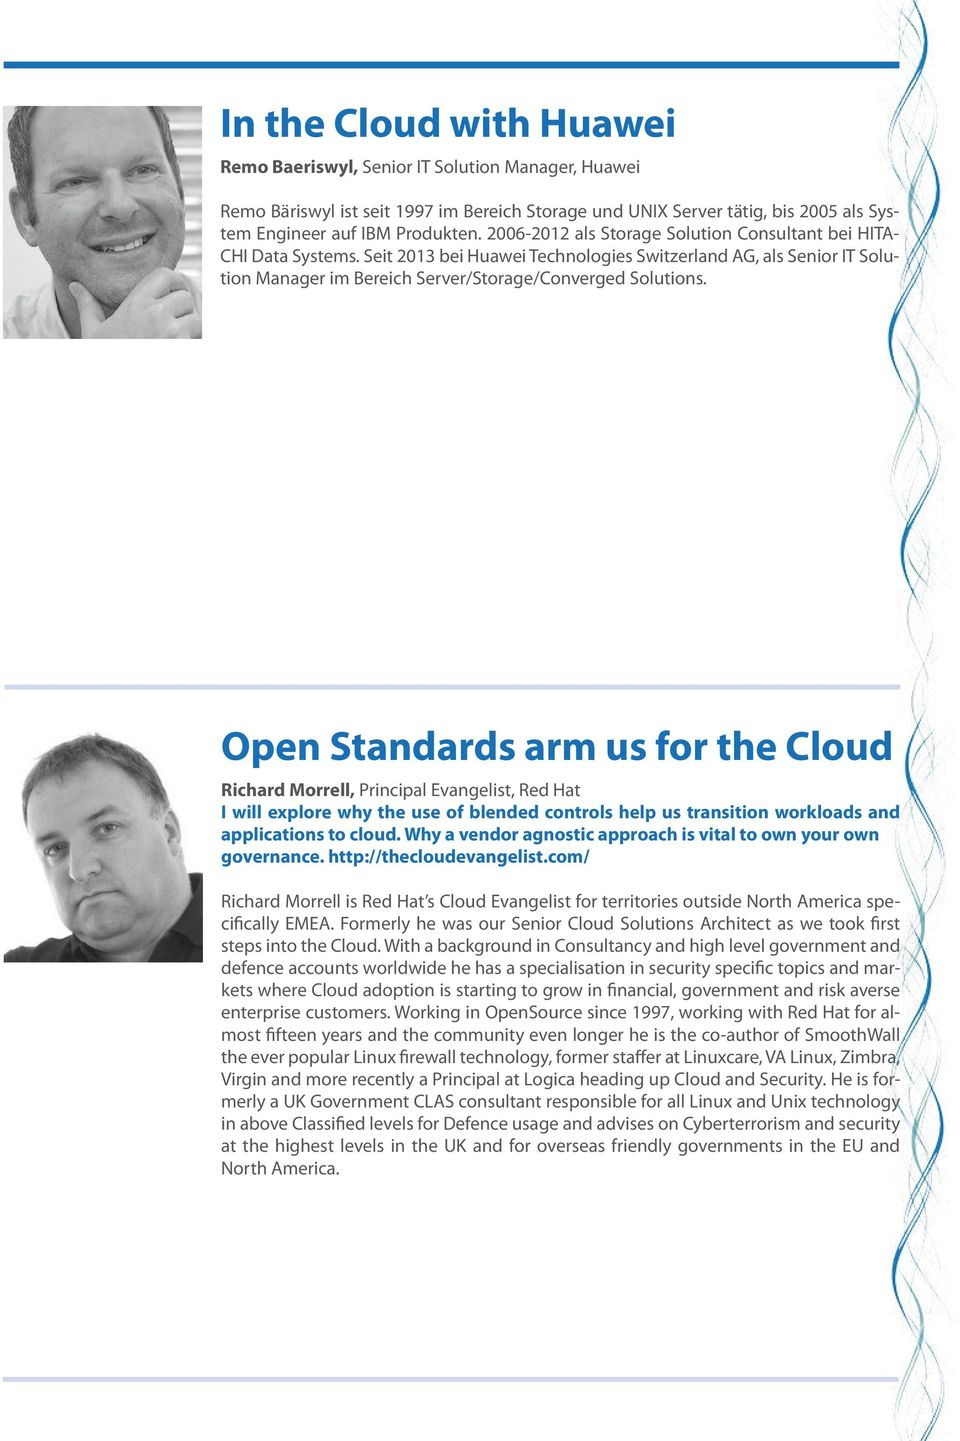 Open Standards arm us for the Cloud Richard Morrell, Principal Evangelist, Red Hat I will explore why the use of blended controls help us transition workloads and applications to cloud.